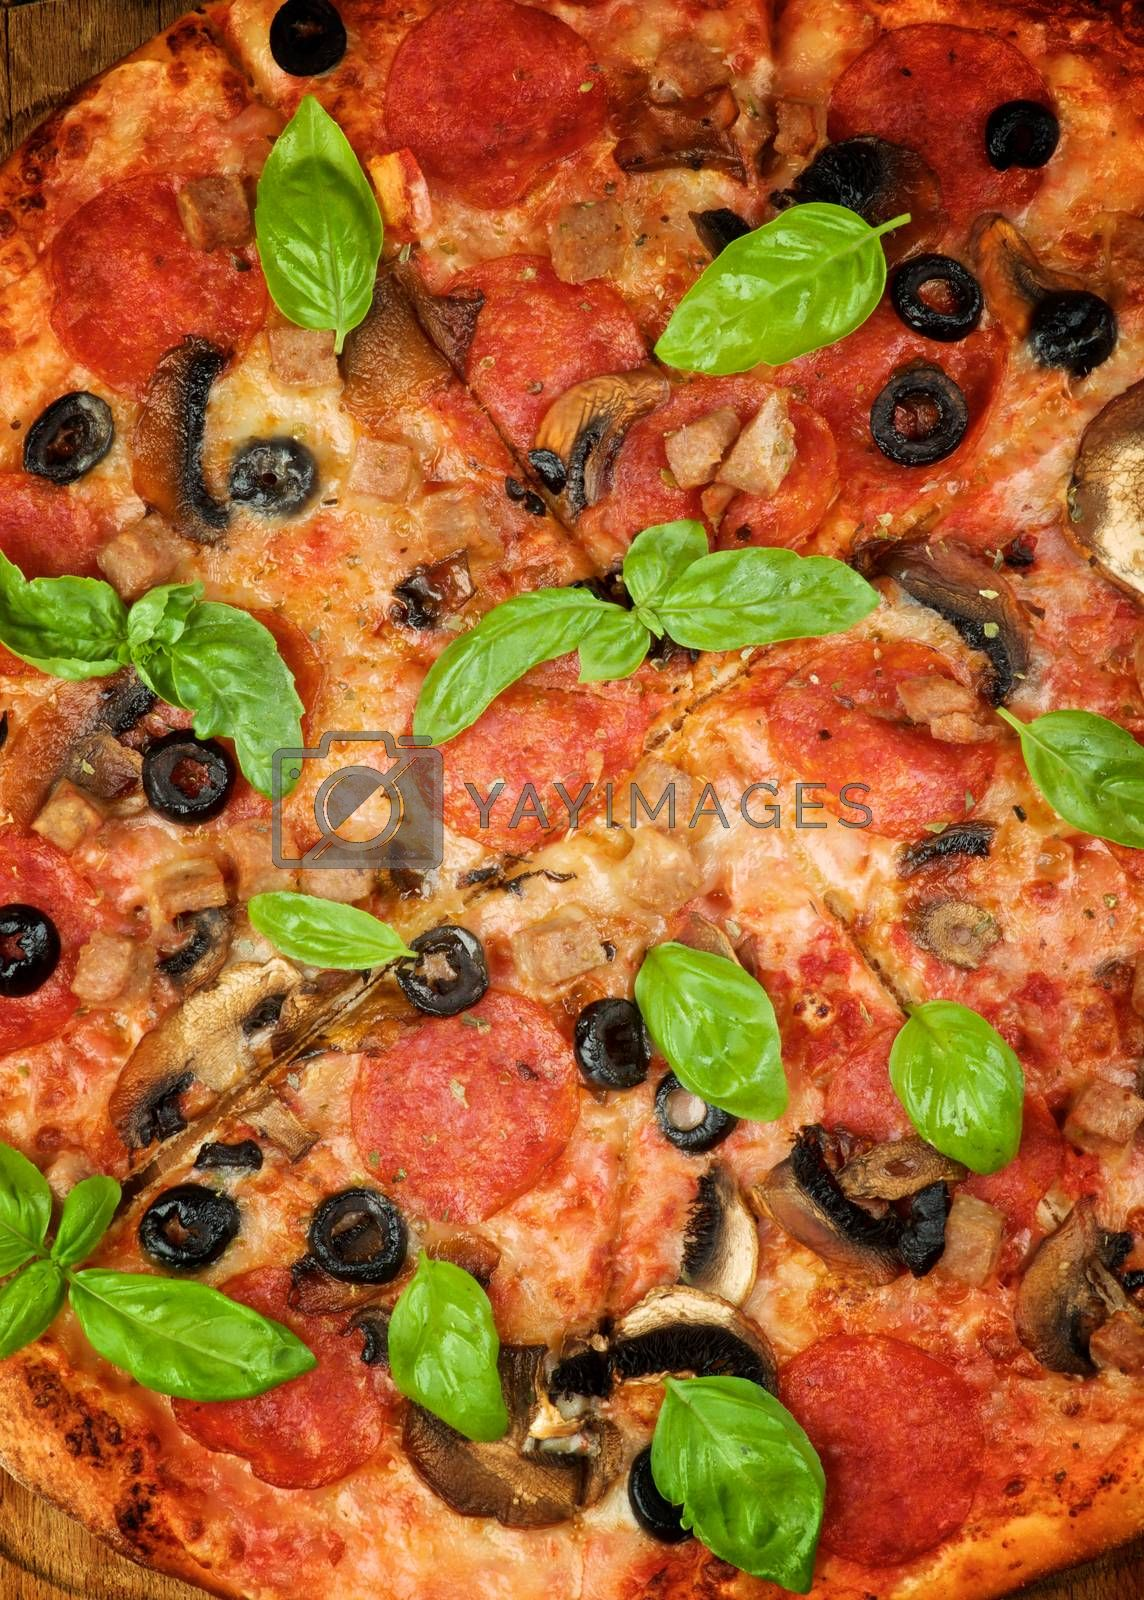 Background of Freshly Baker Pepperoni and Mushrooms Pizza with Basil closeup